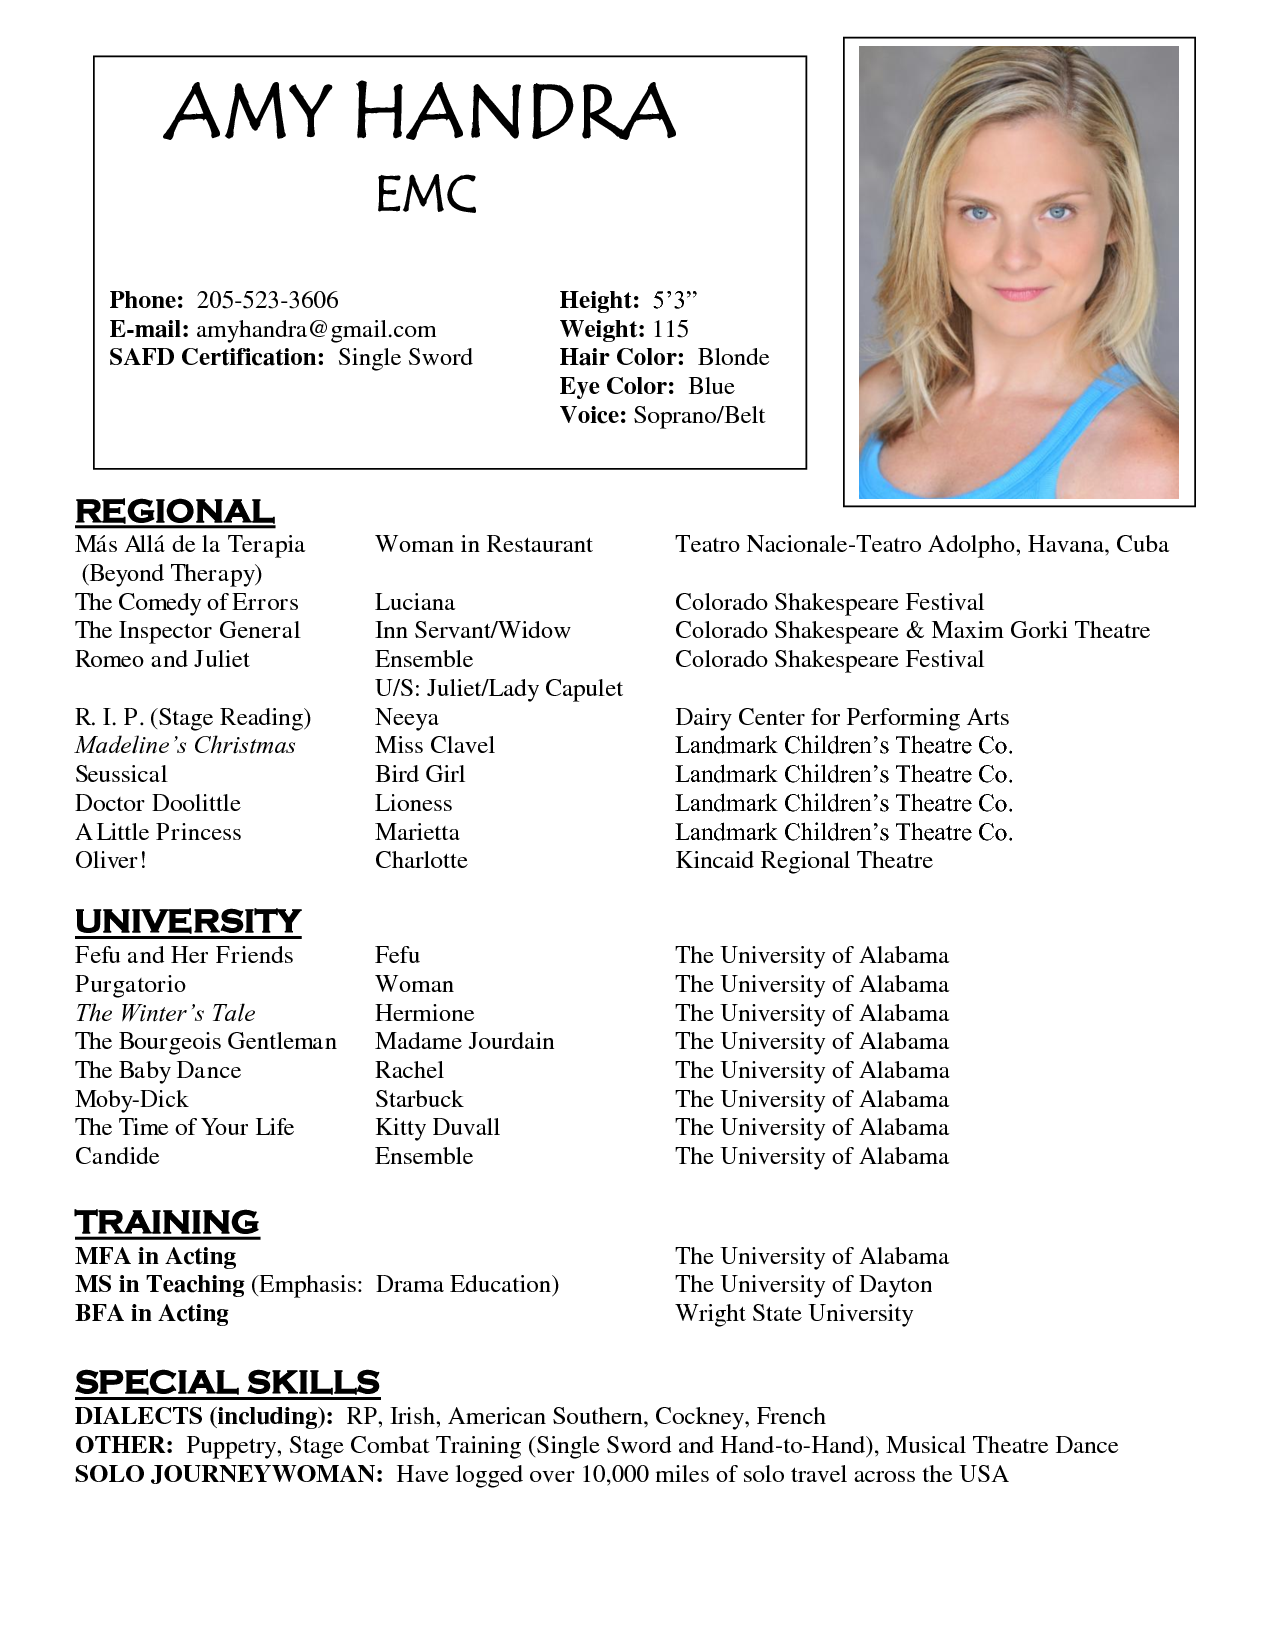 acting resume sample free httpwwwresumecareerinfoacting - Sample Theater Resume